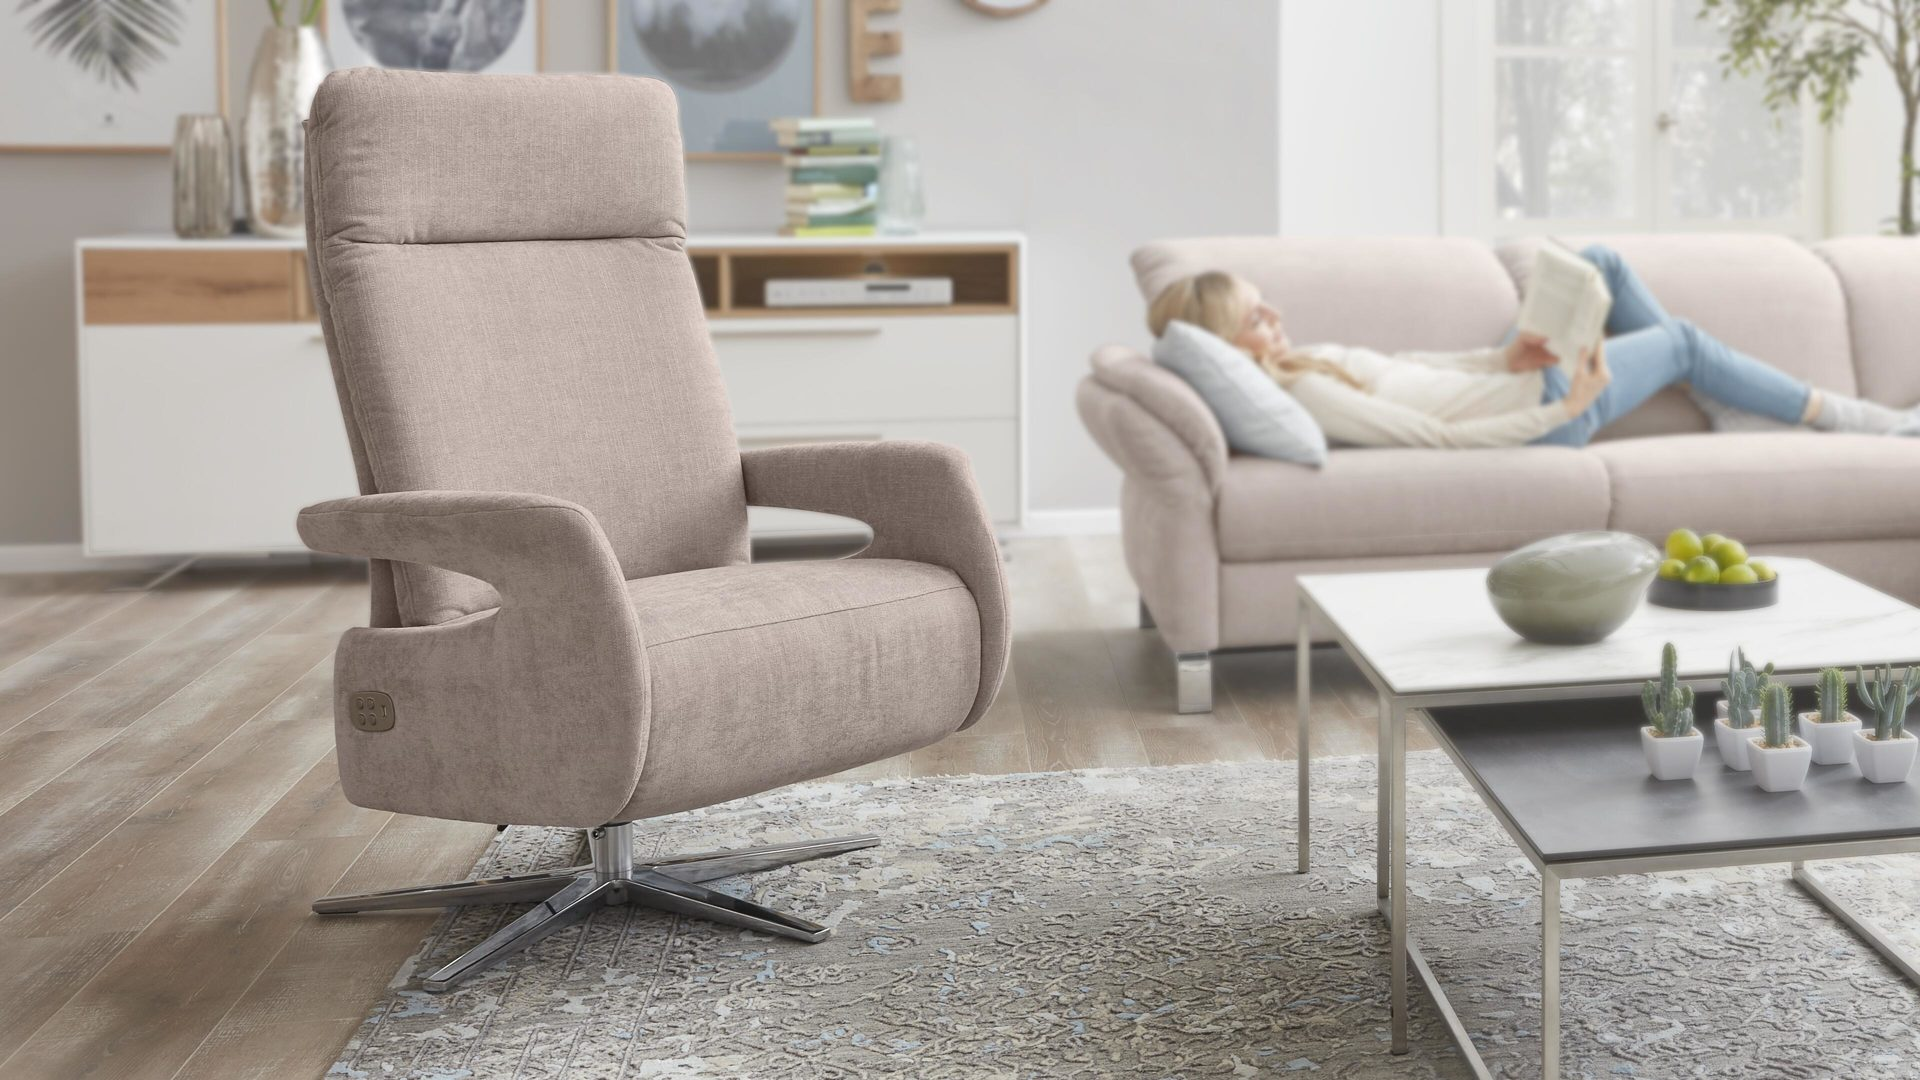 Relaxsessel 3c candy | il aus Stoff in Pastellfarben Interliving Sessel Serie 4510 – Relaxsessel rosa Bezug Vintage & Sternfuß